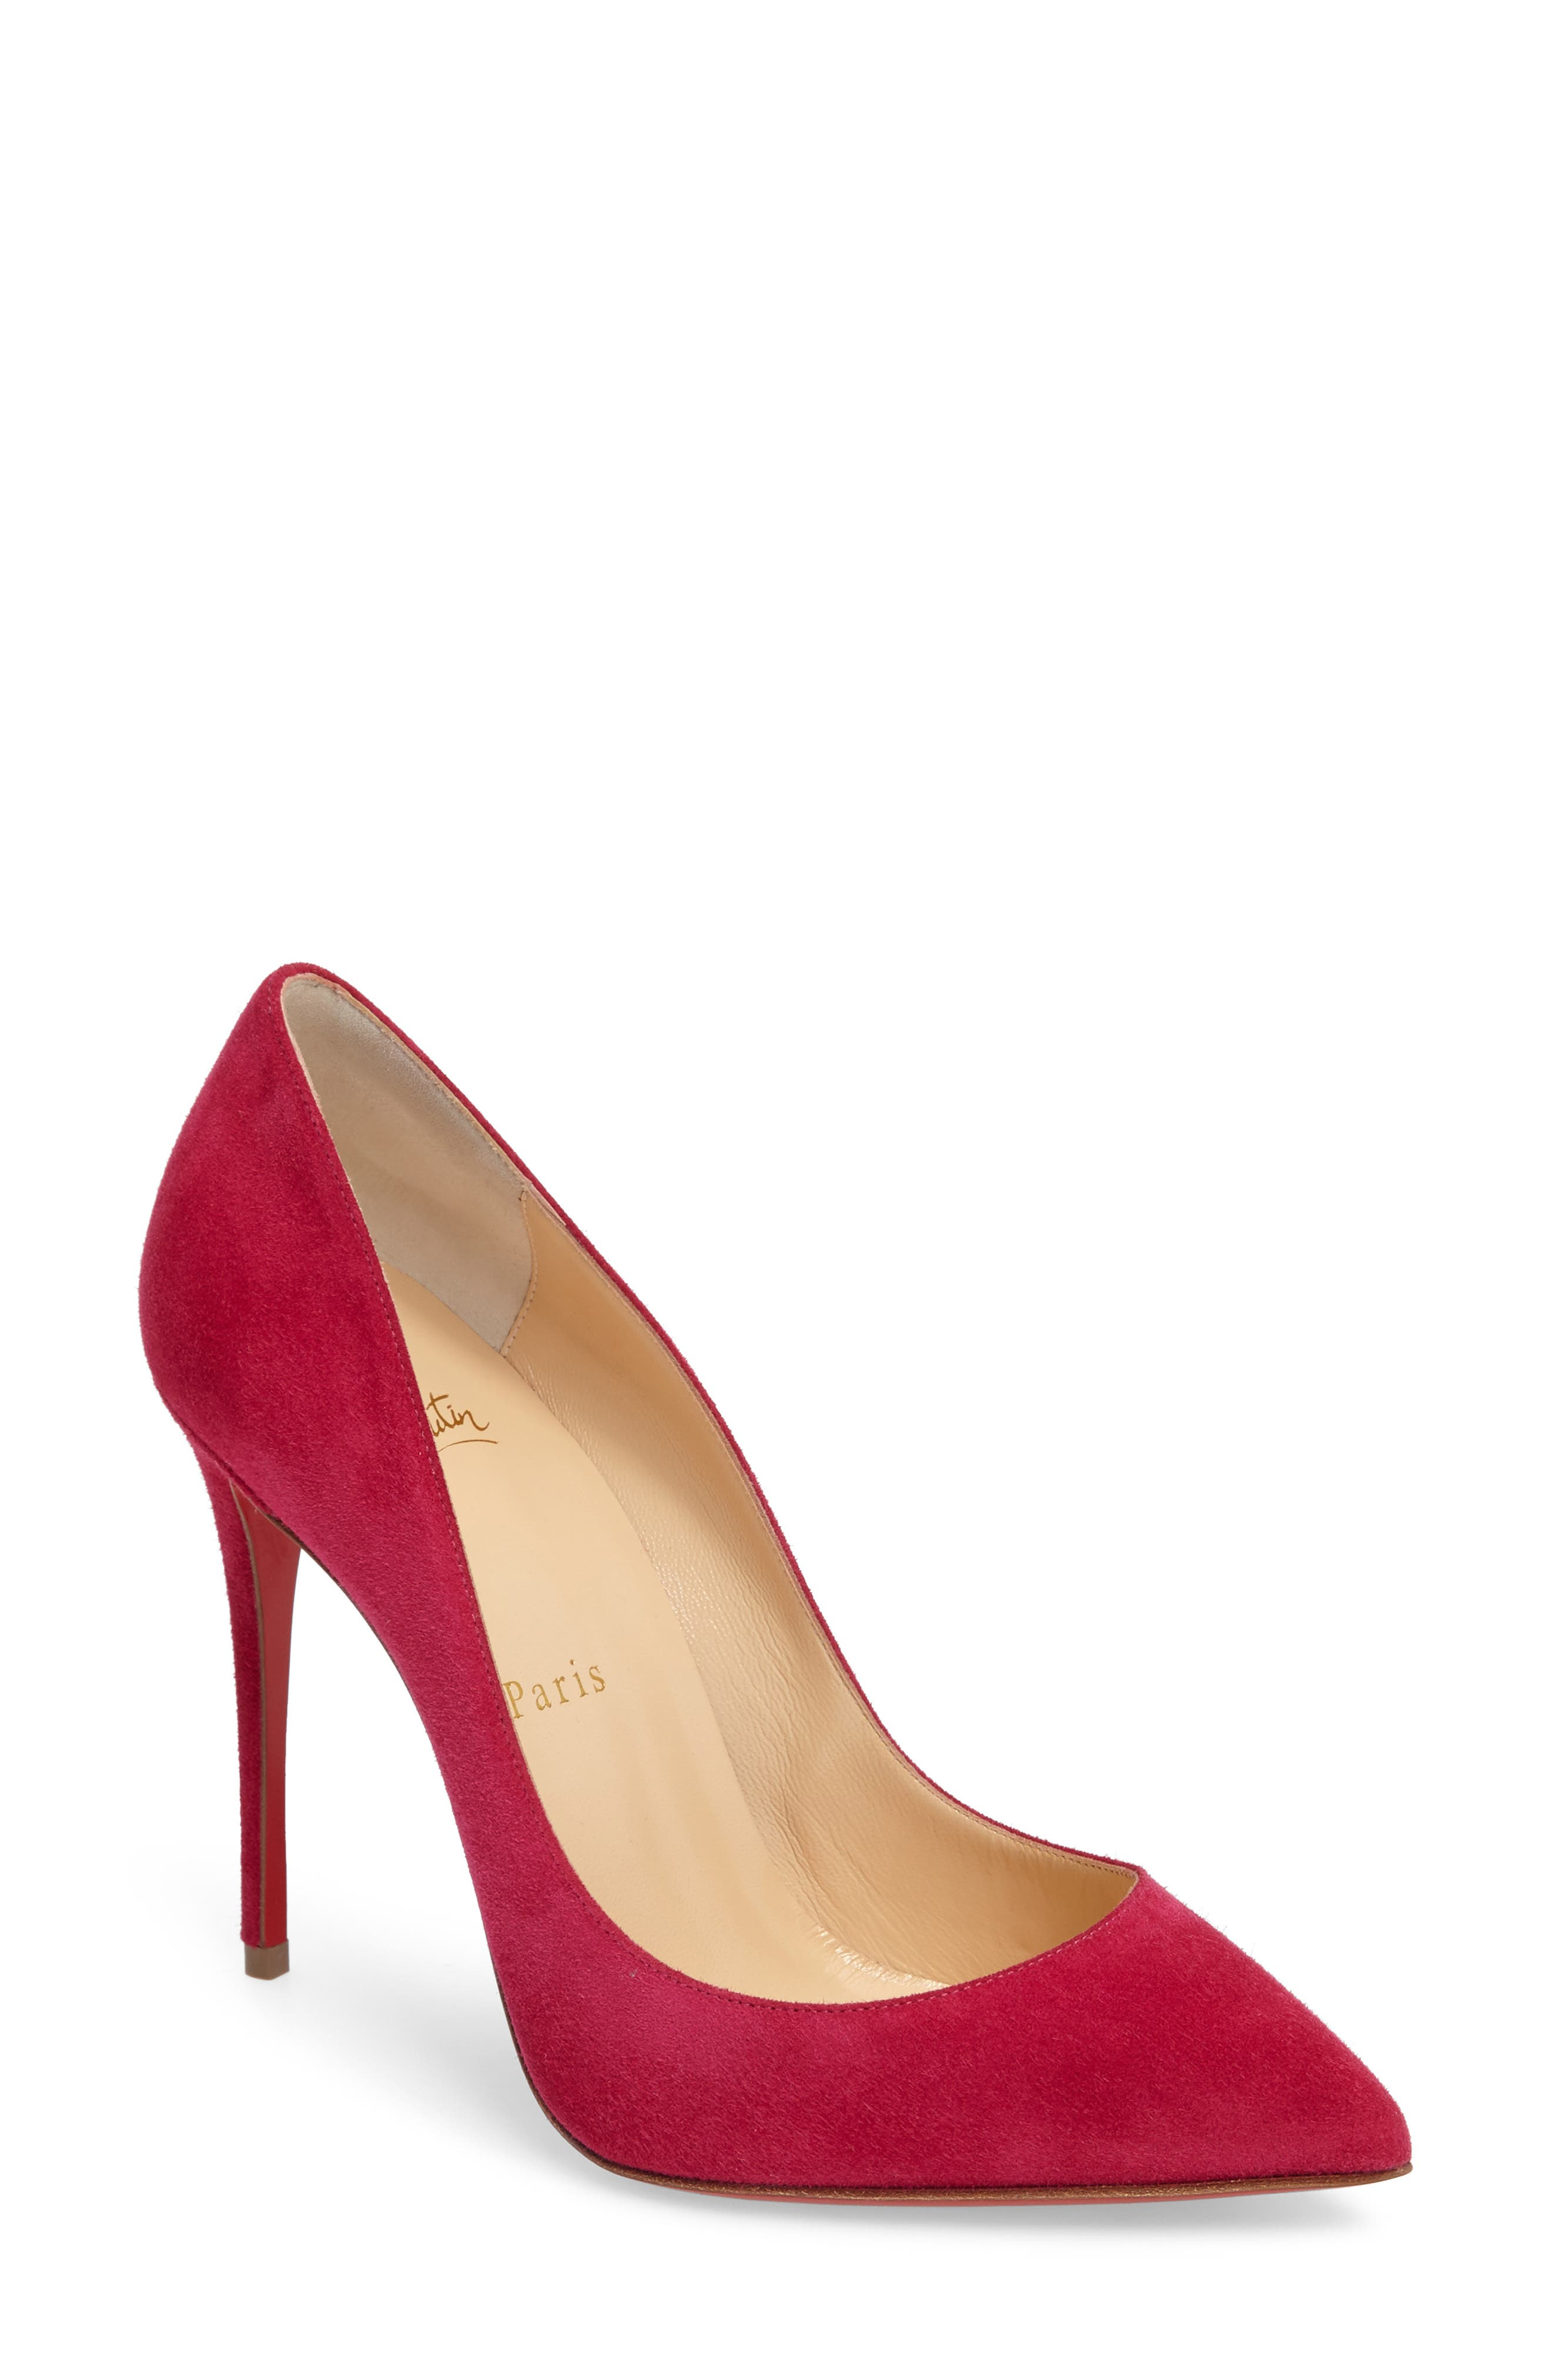 Pigalle Follies Pointy Toe Pump,                         Main,                         color, Rosa Suede